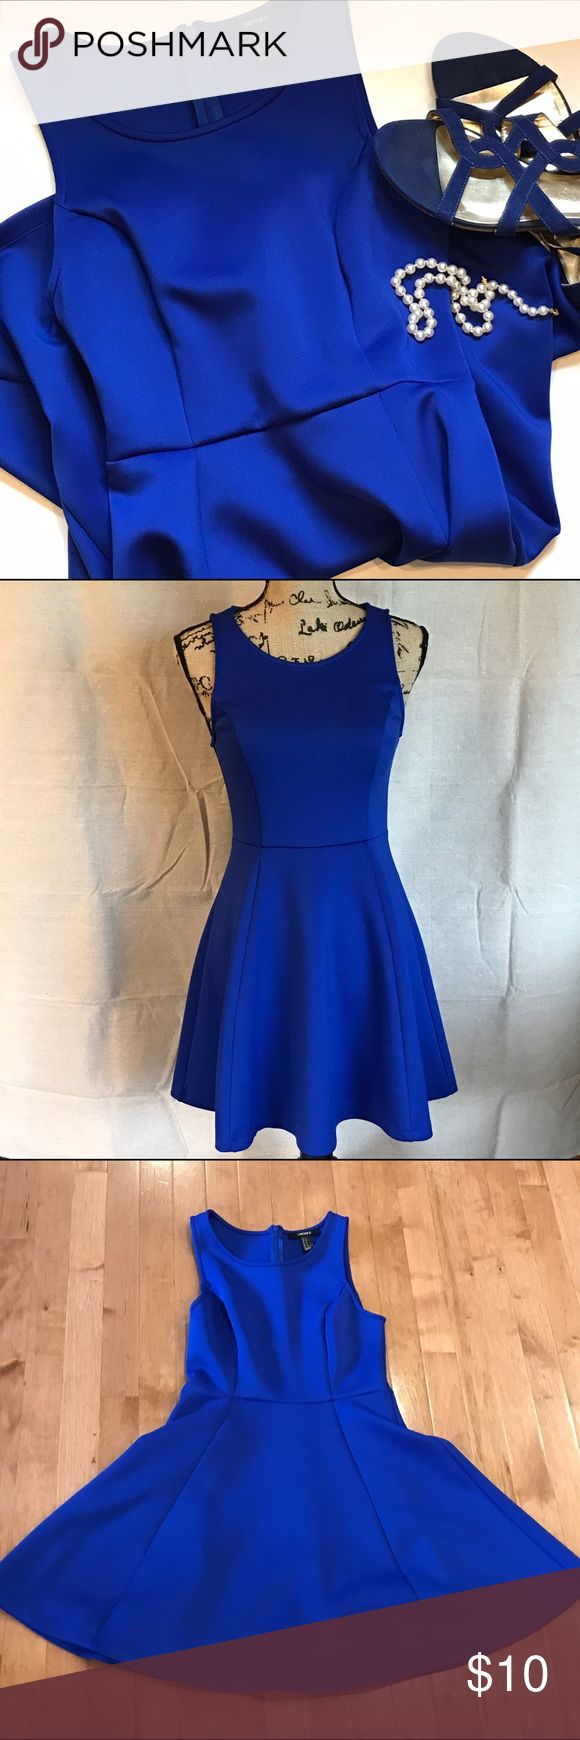 Forever 21 blue scuba skater dress Flattering cut and fabric this royal blue skater dress from Forever 21 is a size small. Forever 21 Dresses